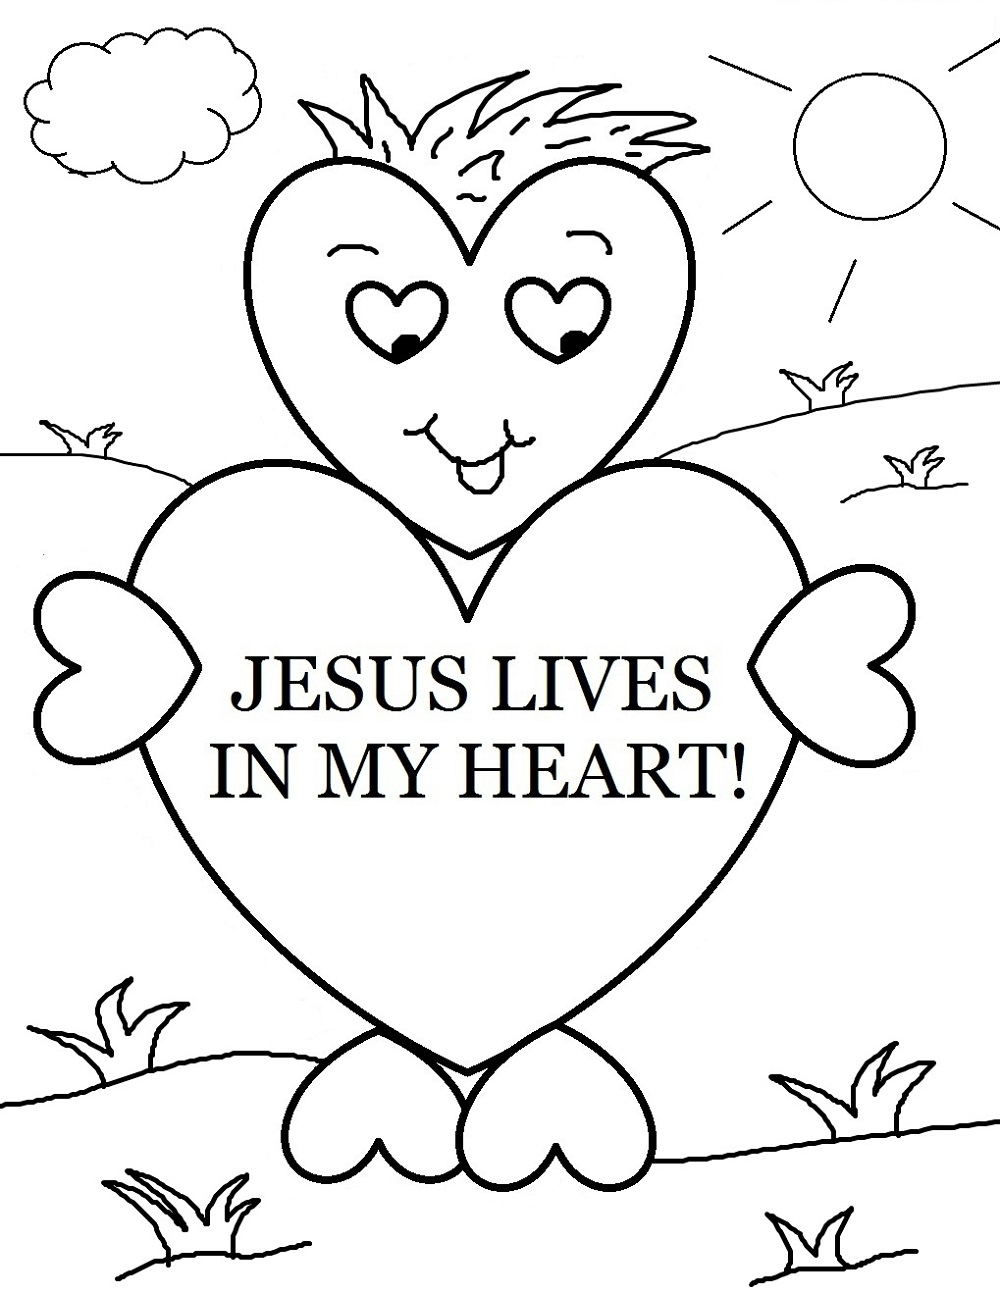 Christian Coloring Pages For Kids And Adults Learning Printable